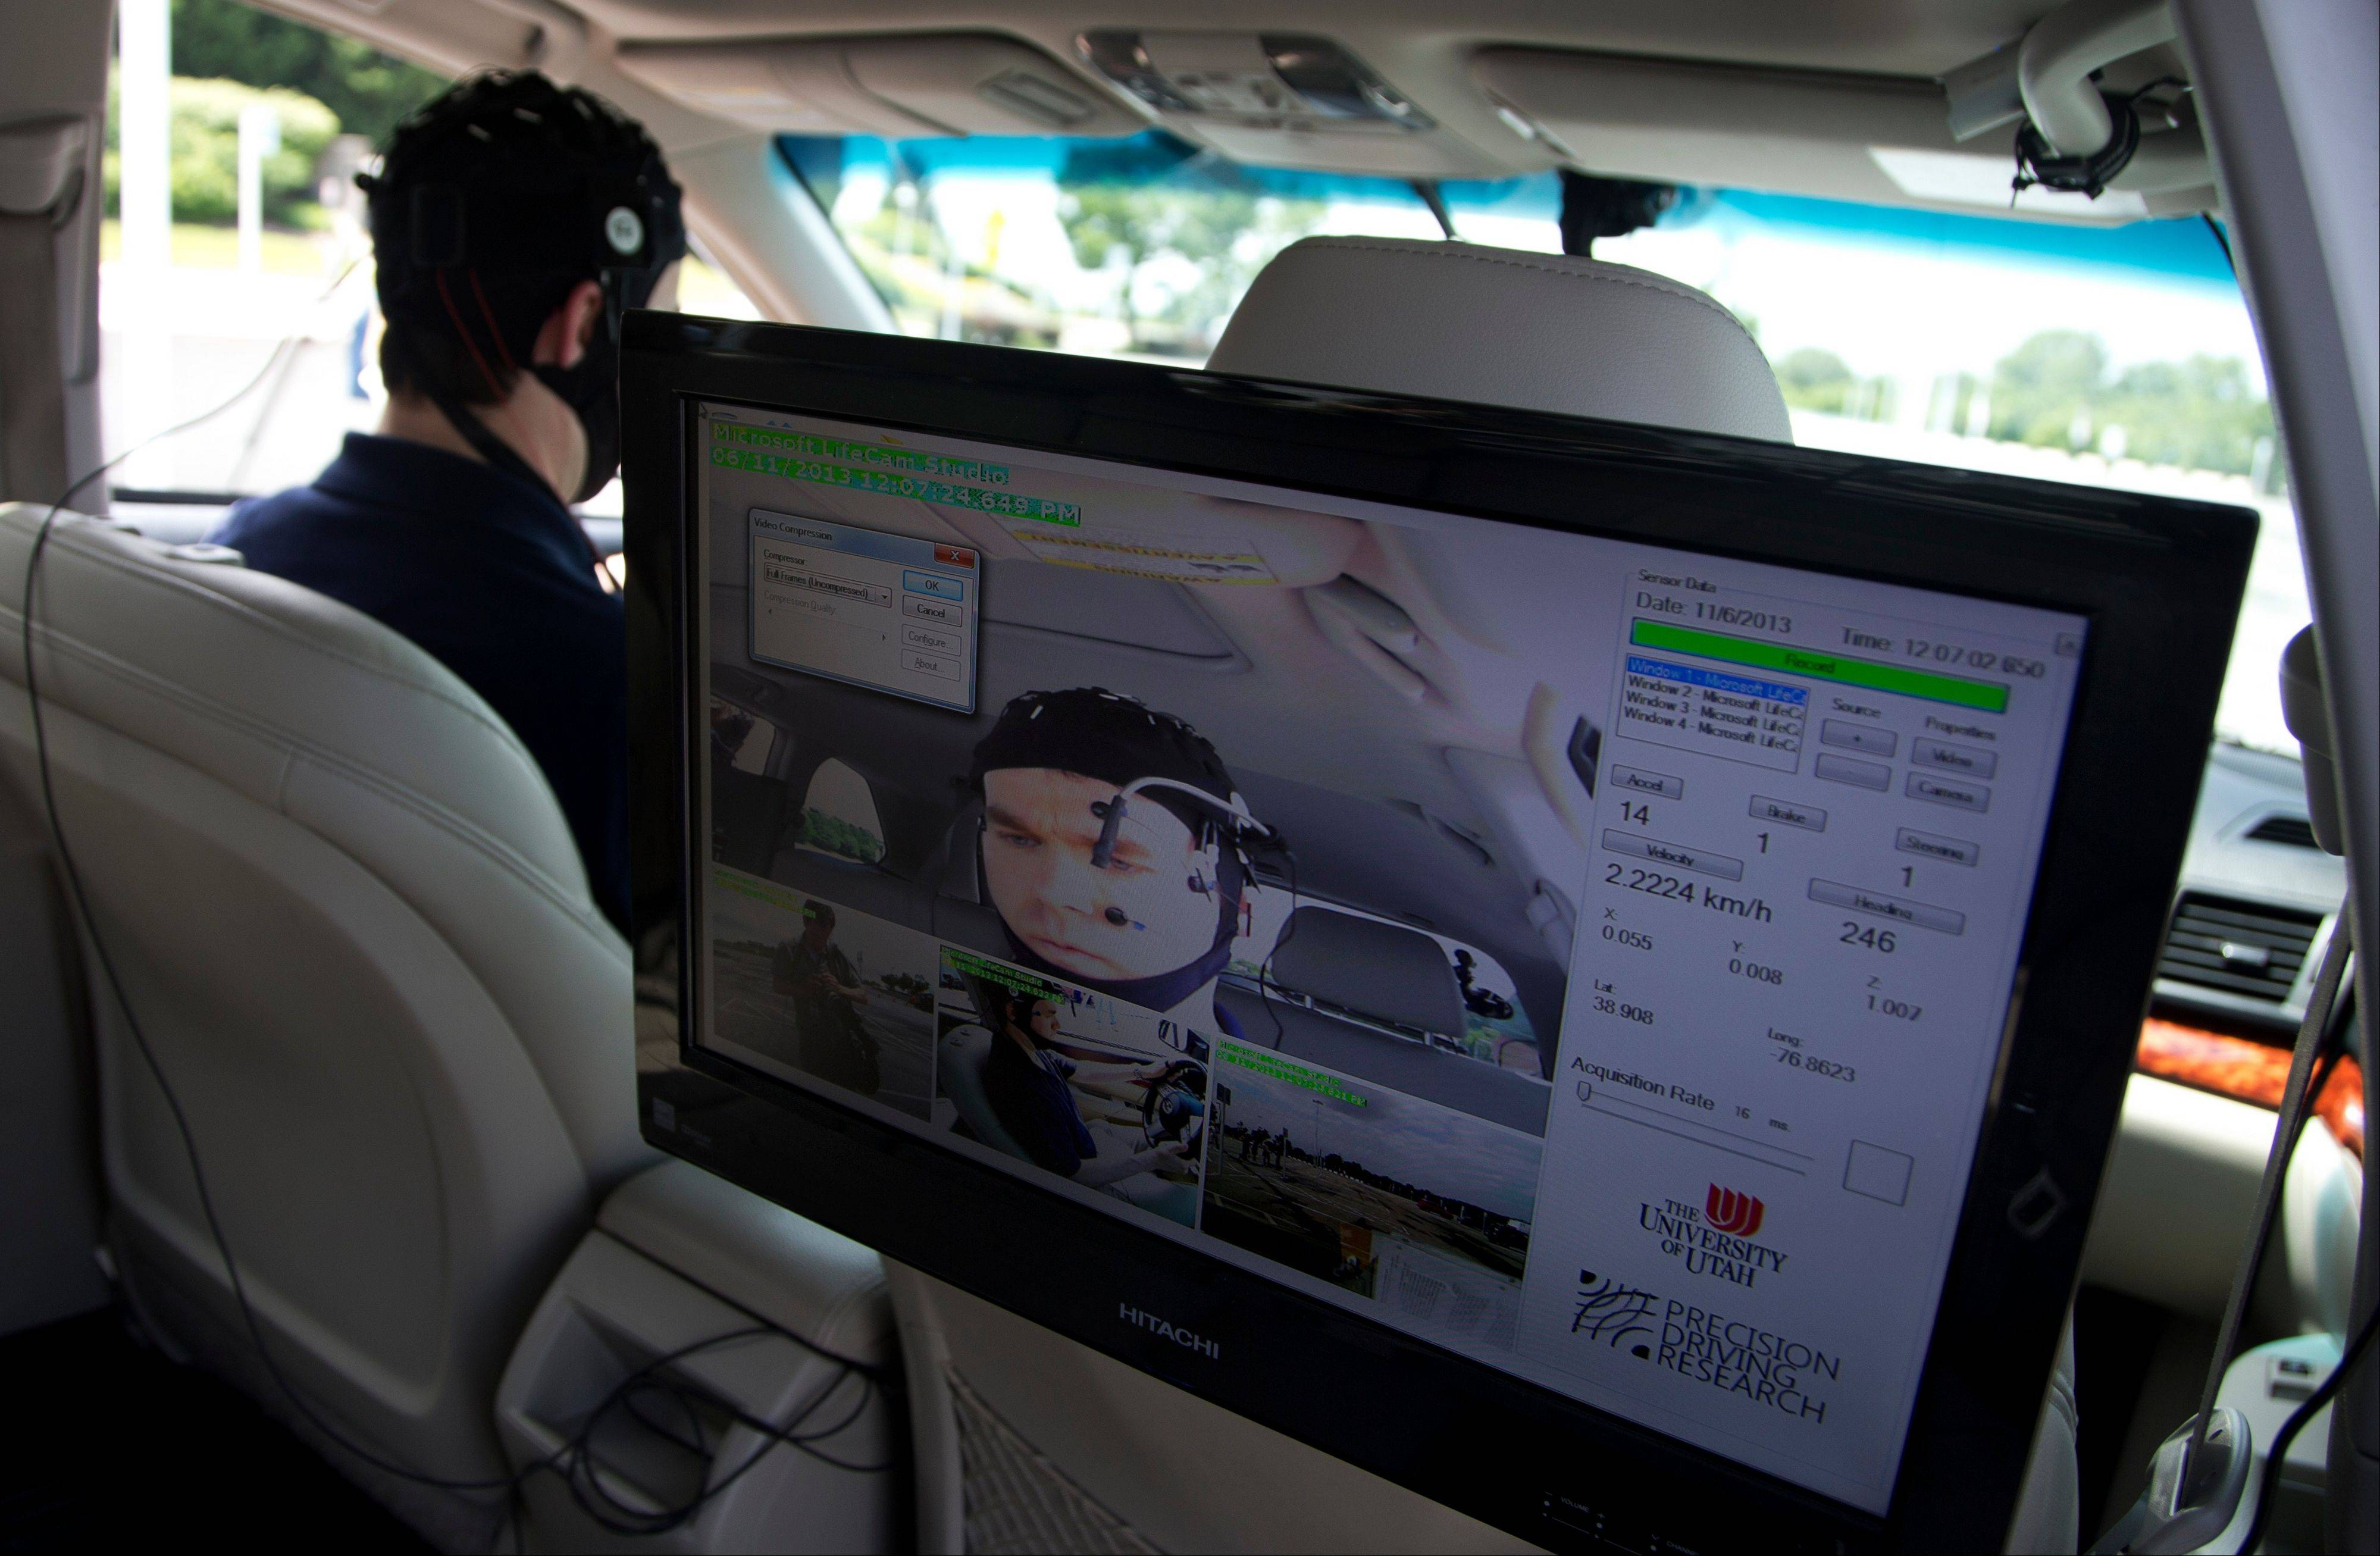 Russ Martin of American Automobile Association (AAA), is seen on a monitor in a research vehicle skull cap to the research vehicle during a demonstrations in support of their new study on distracted driving in Landover, Md.